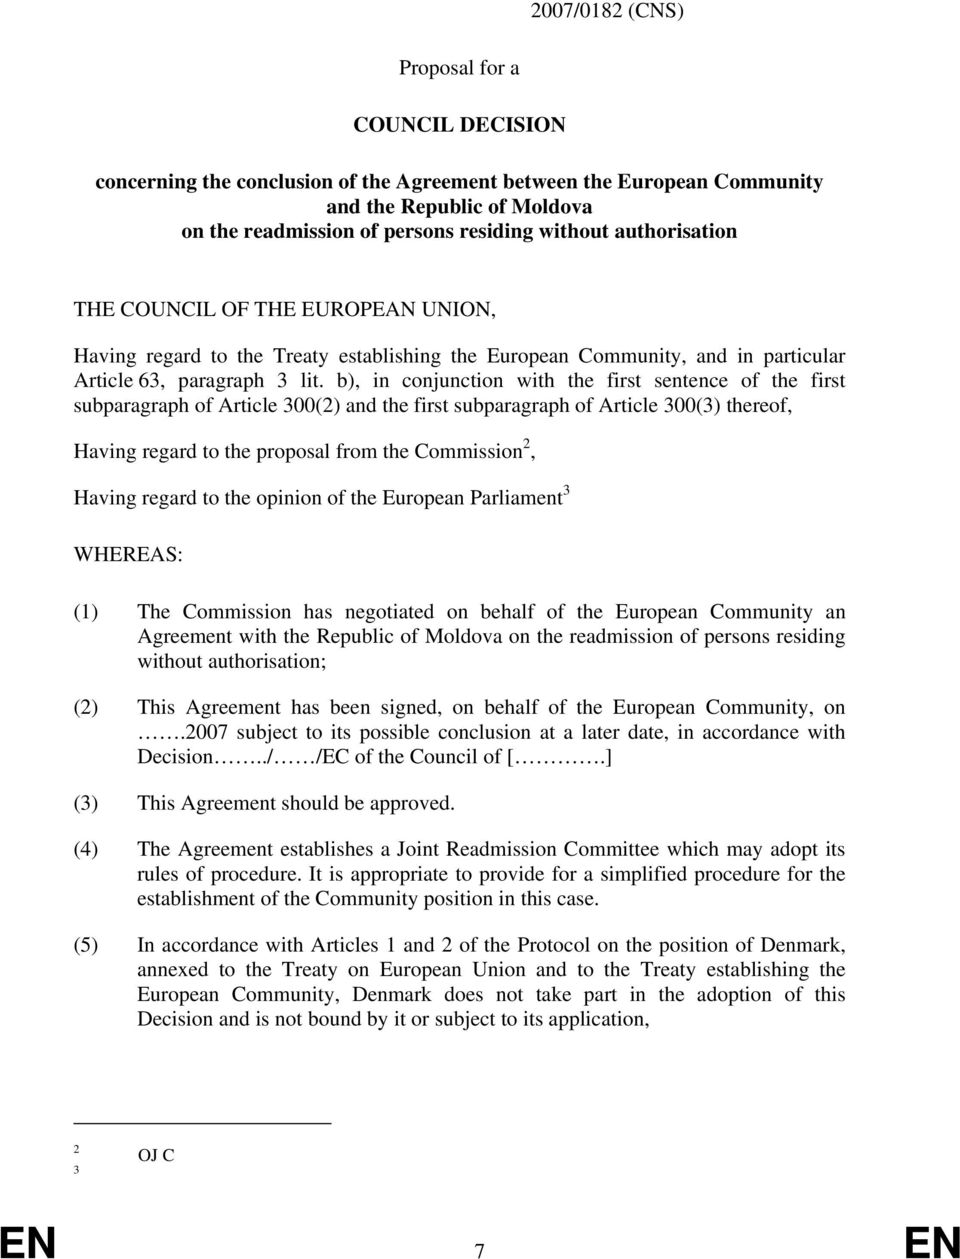 b), in conjunction with the first sentence of the first subparagraph of Article 300(2) and the first subparagraph of Article 300(3) thereof, Having regard to the proposal from the Commission 2,